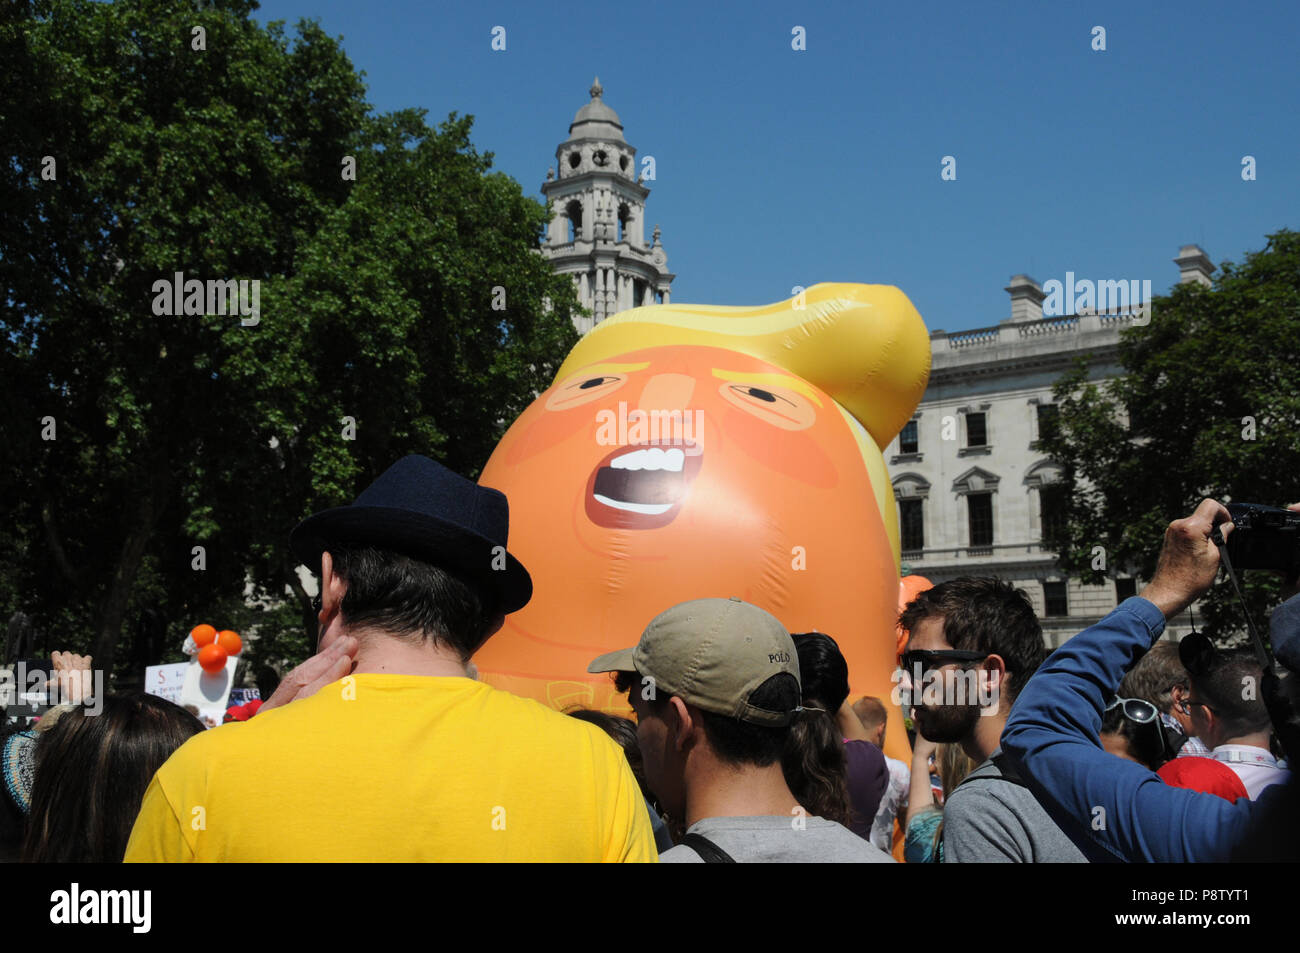 The Donald Trump inflatable balloon in London's Parliament Square. - Stock Image